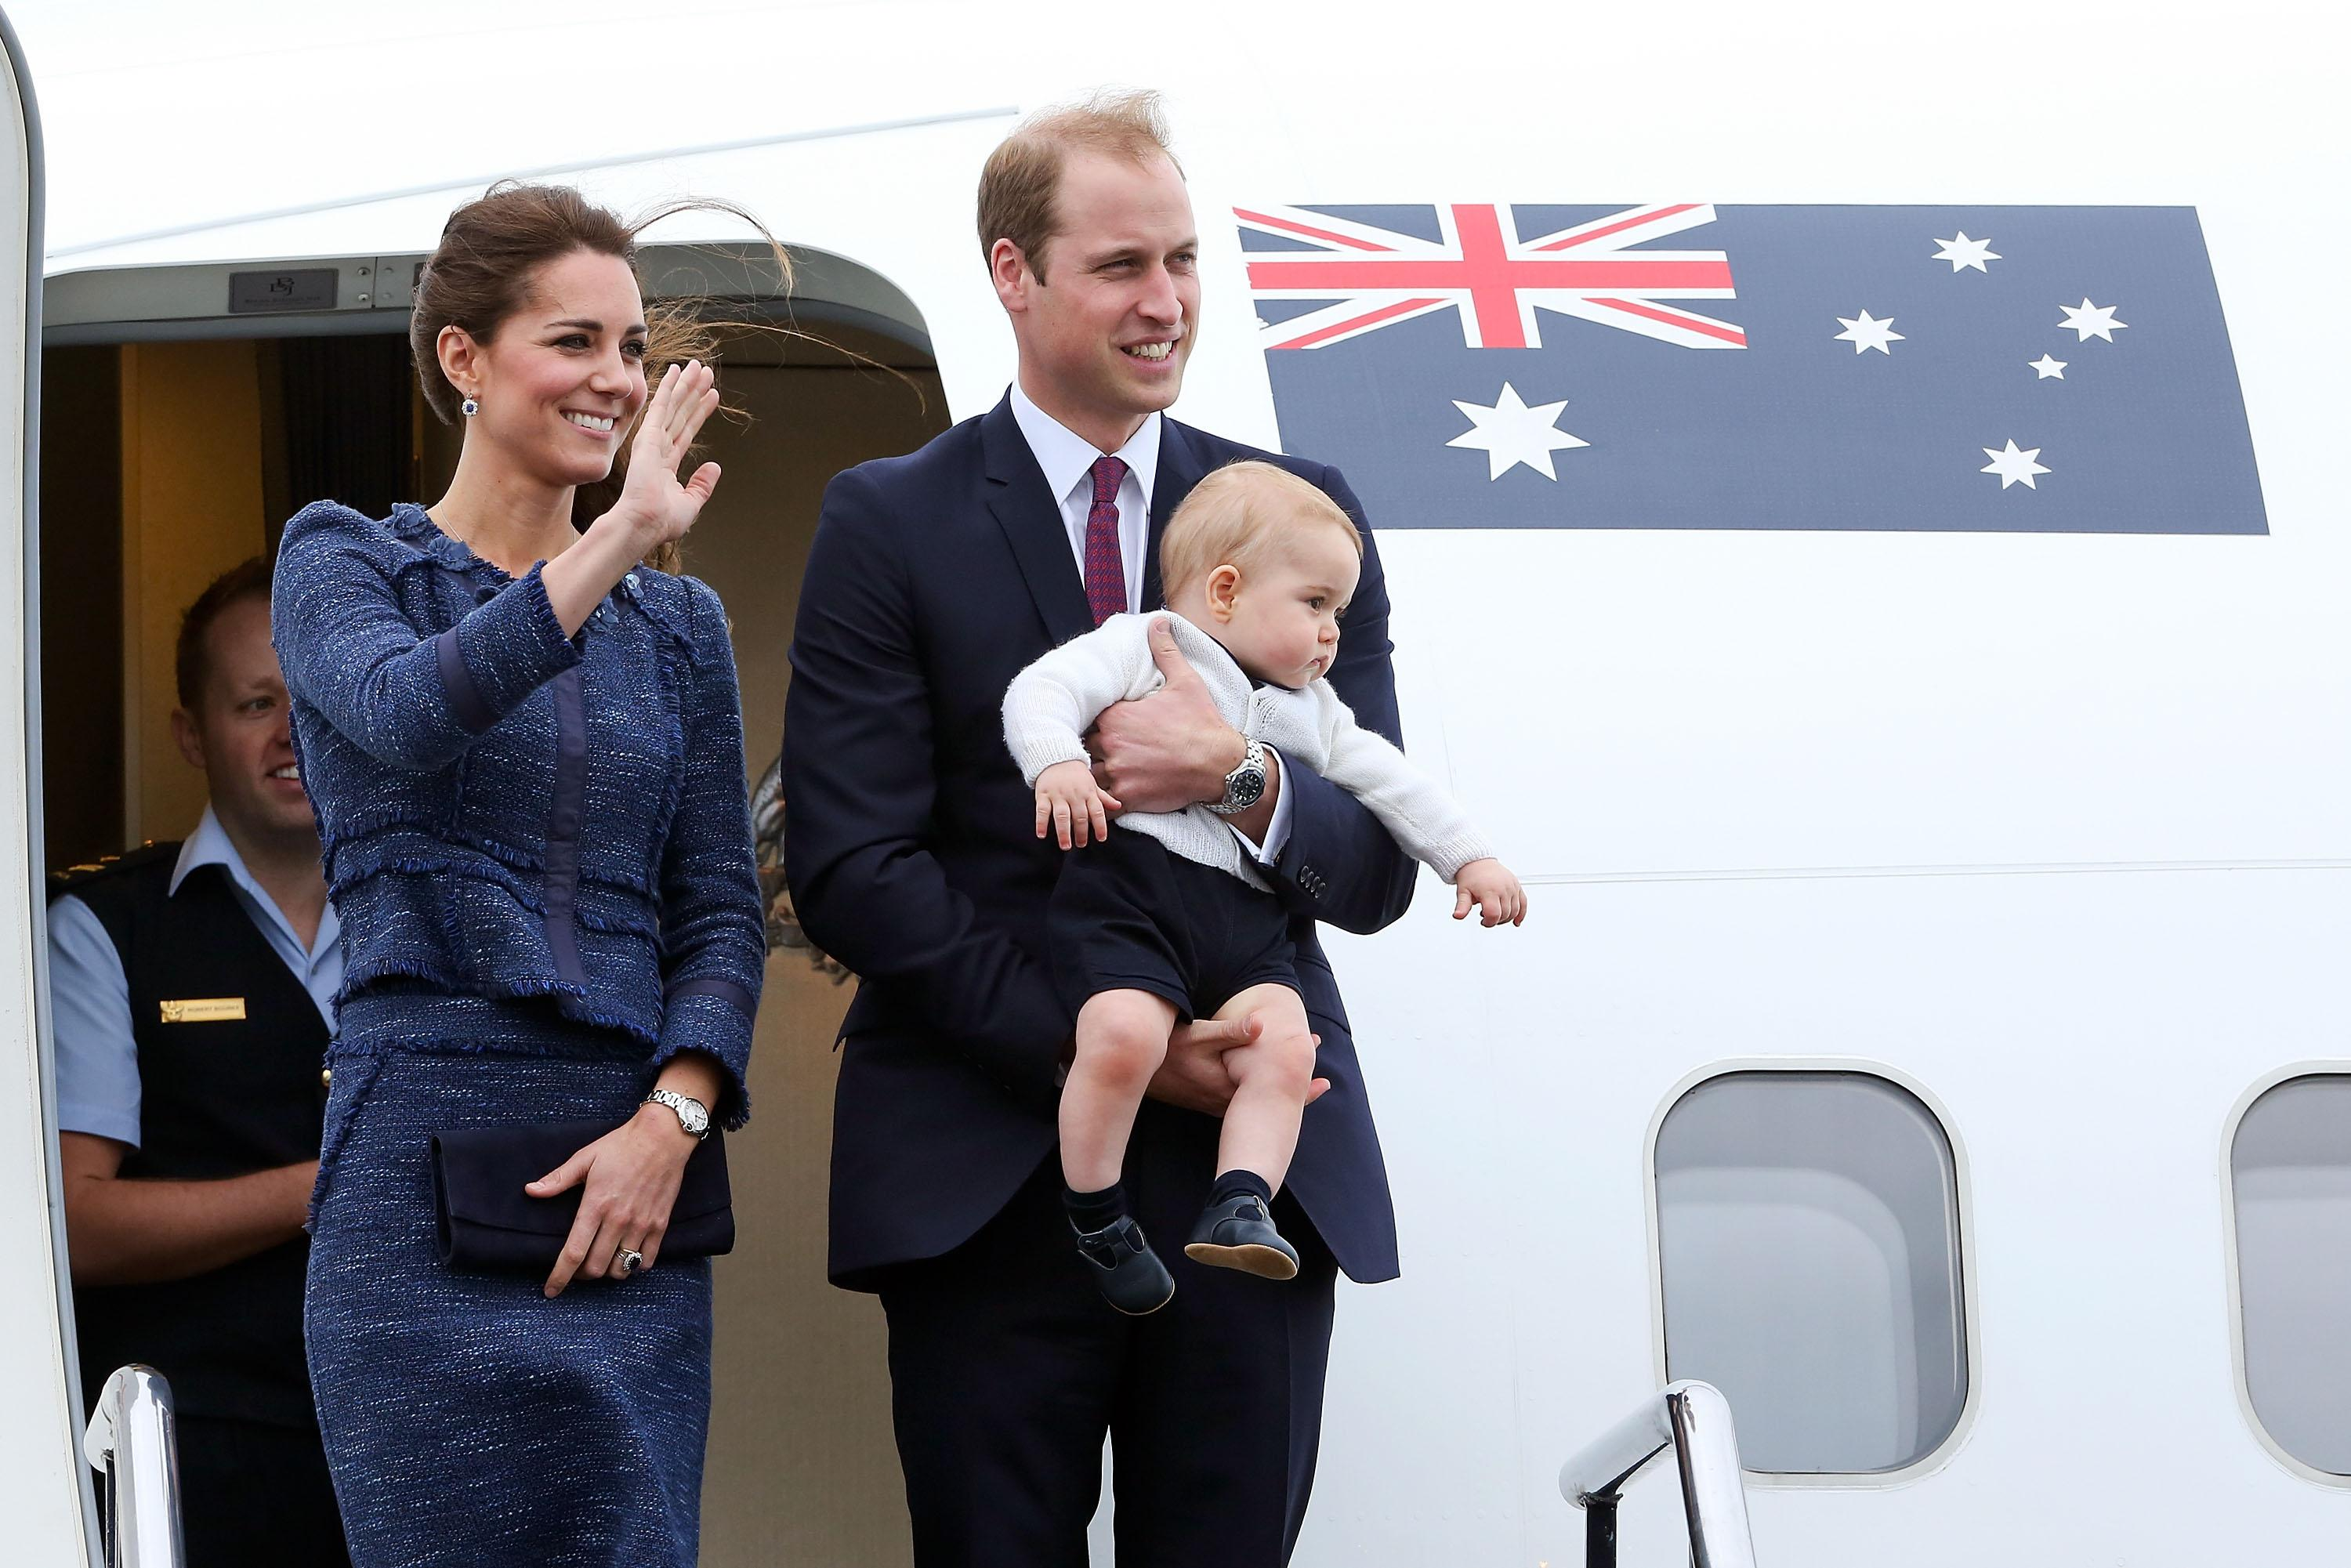 prince-william-plane-1542704552863-1542704555489.jpg